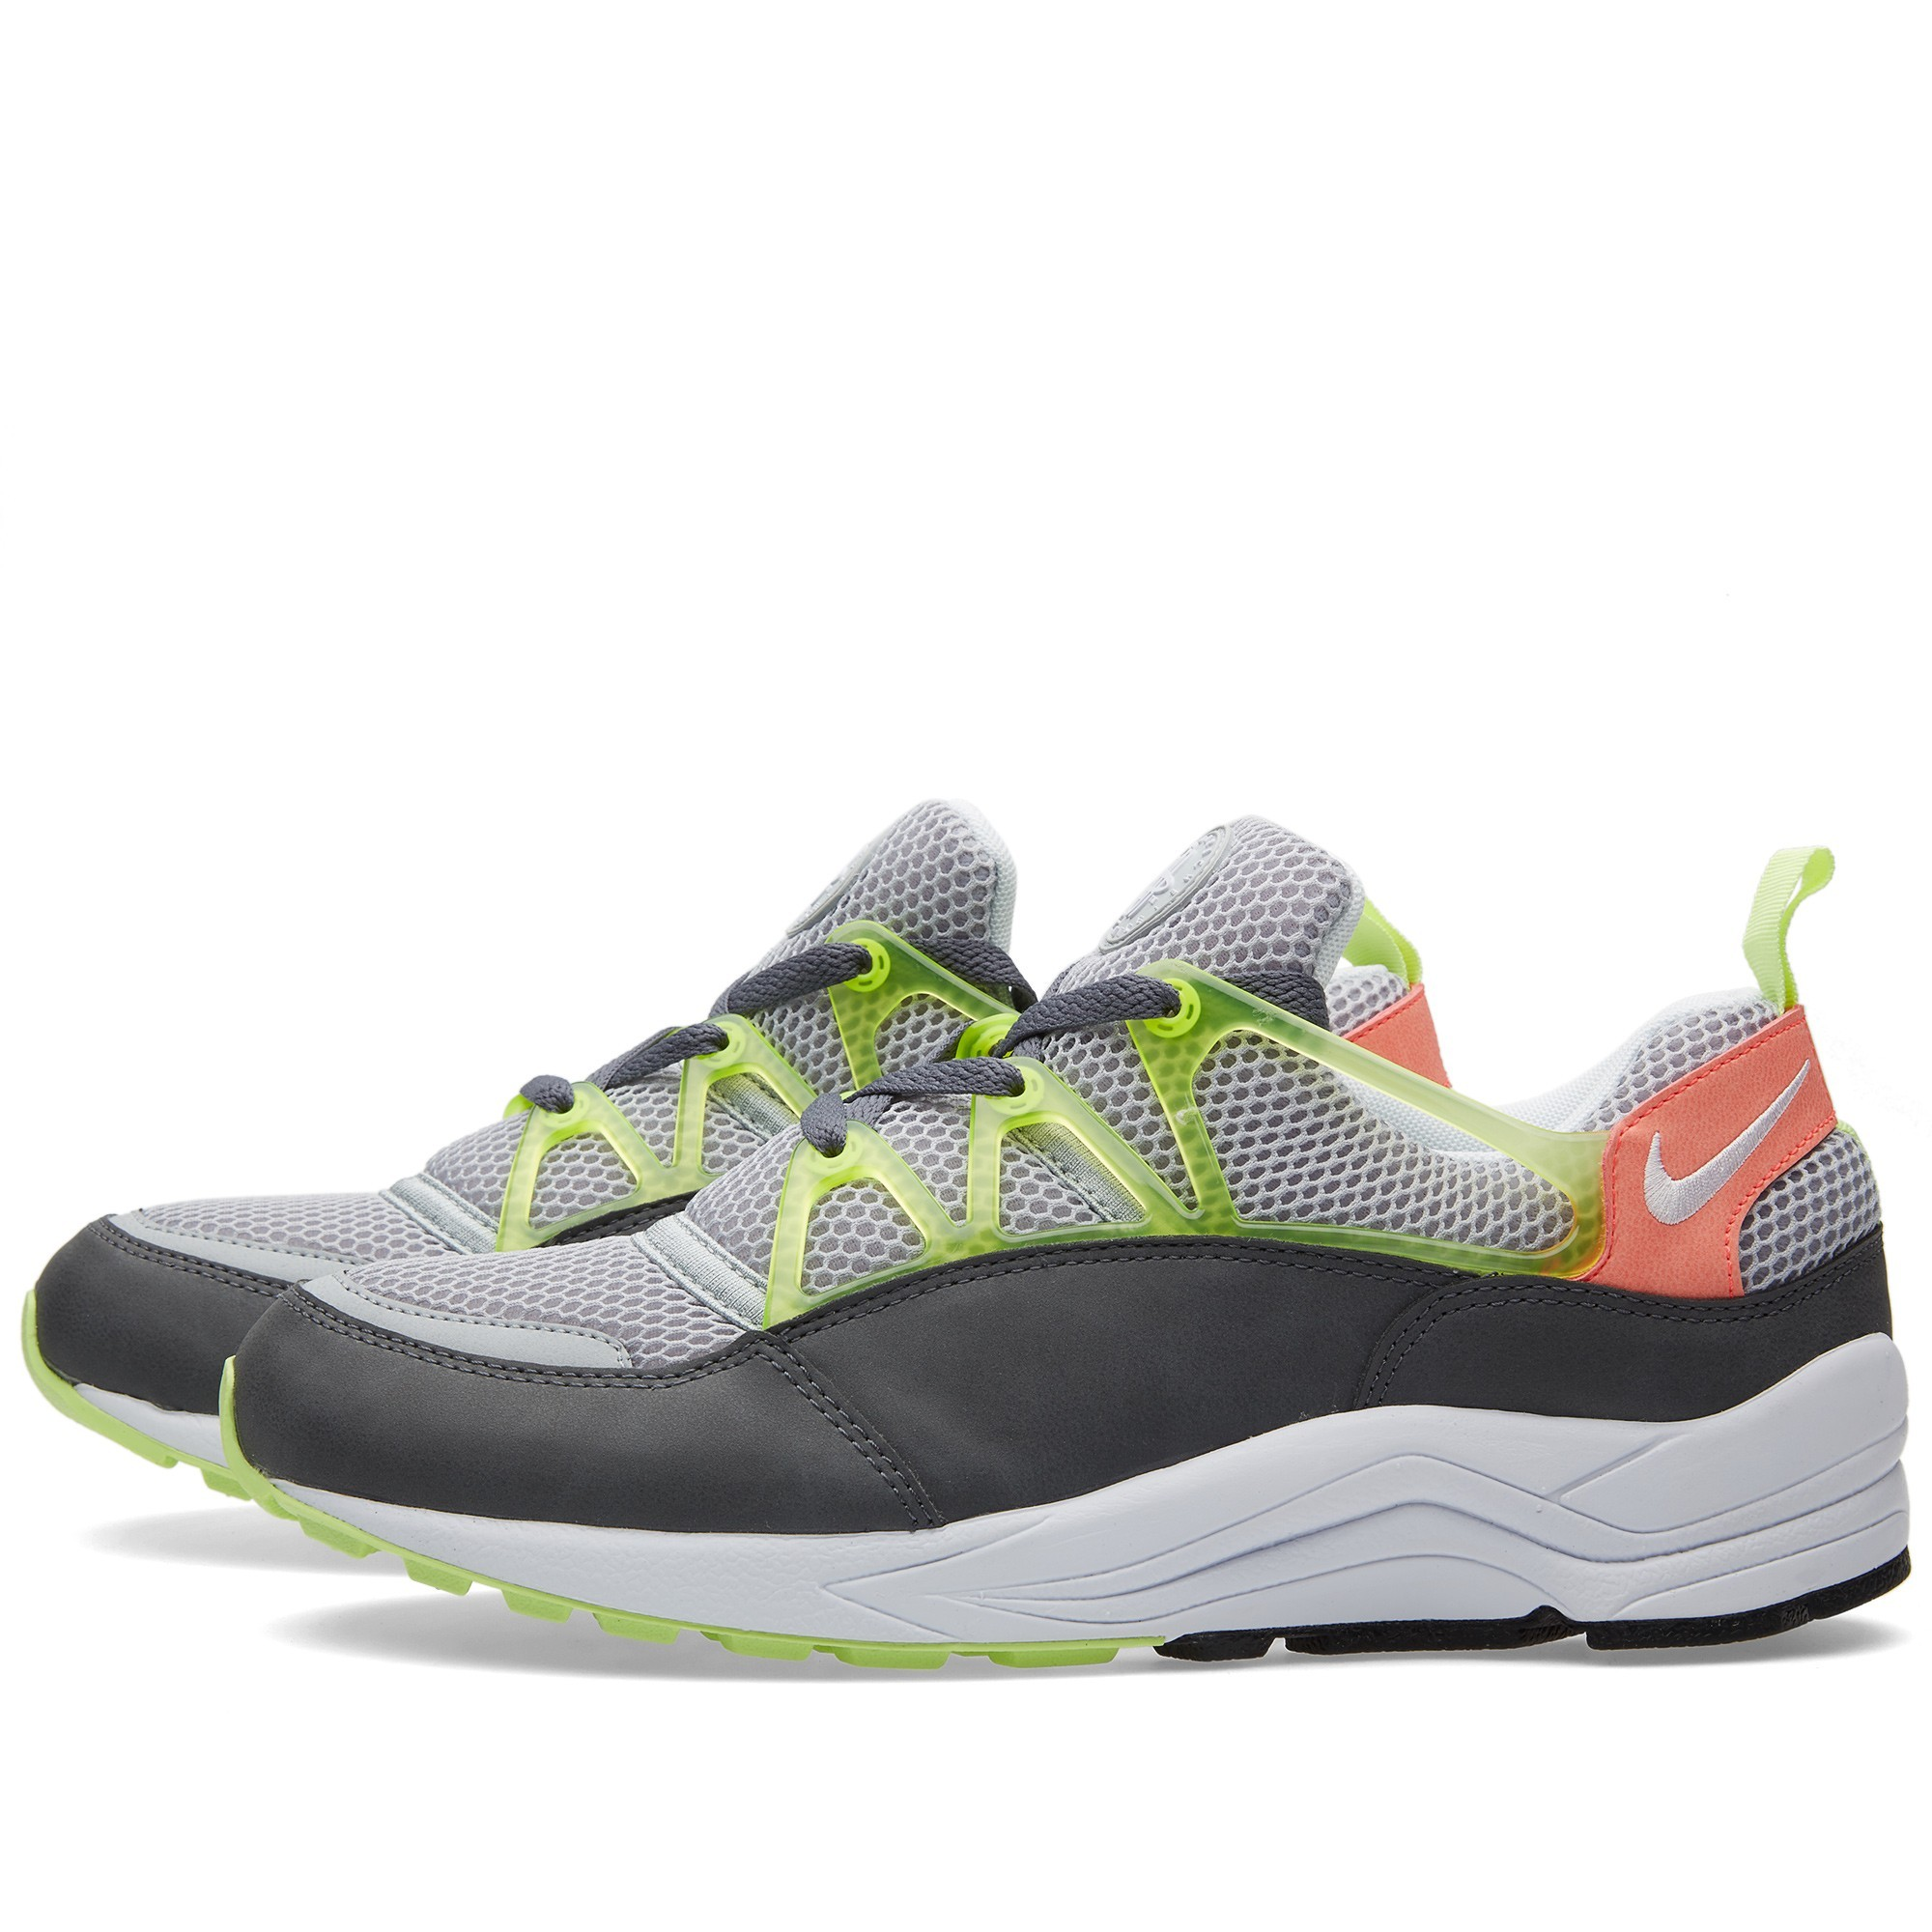 Authentique Nike Air Huarache Light Ville Fb Hommes Chaussures De Ville Light 04e2ec